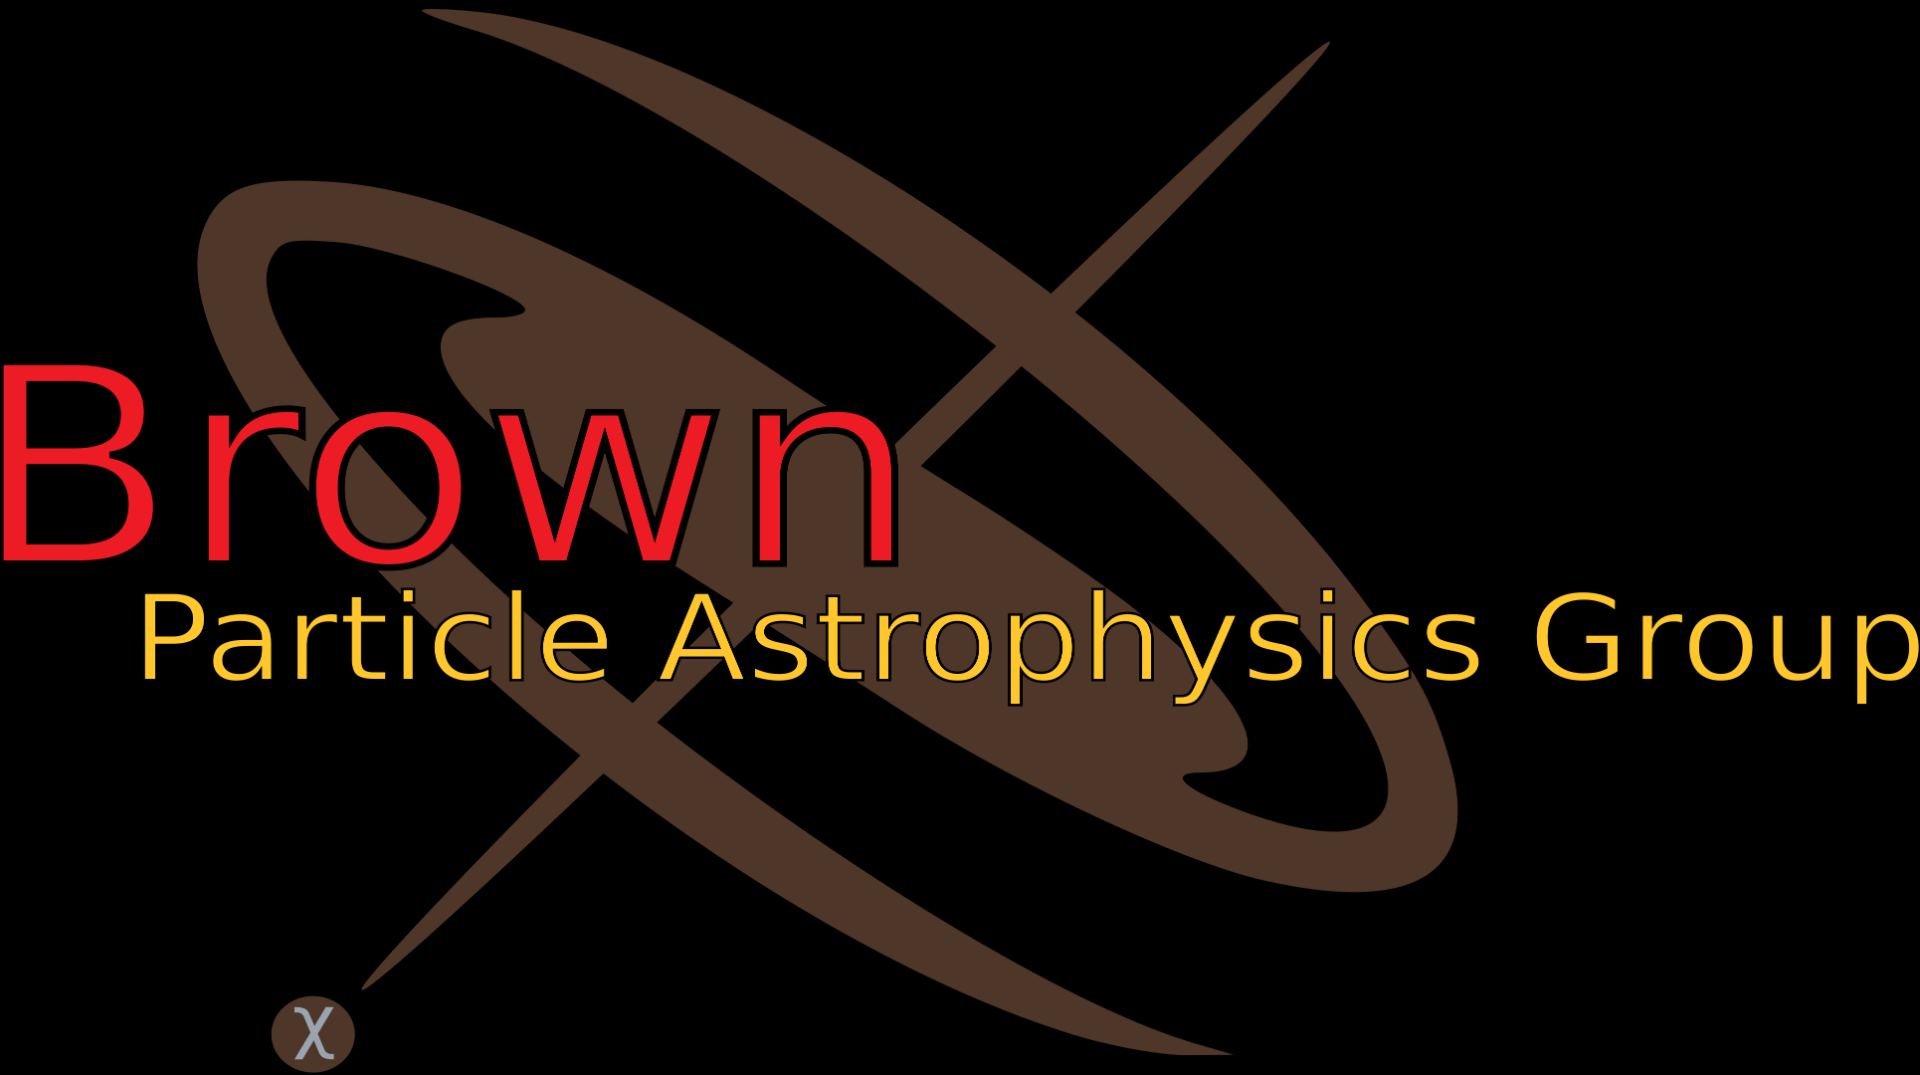 Brown Particle Astrophysics